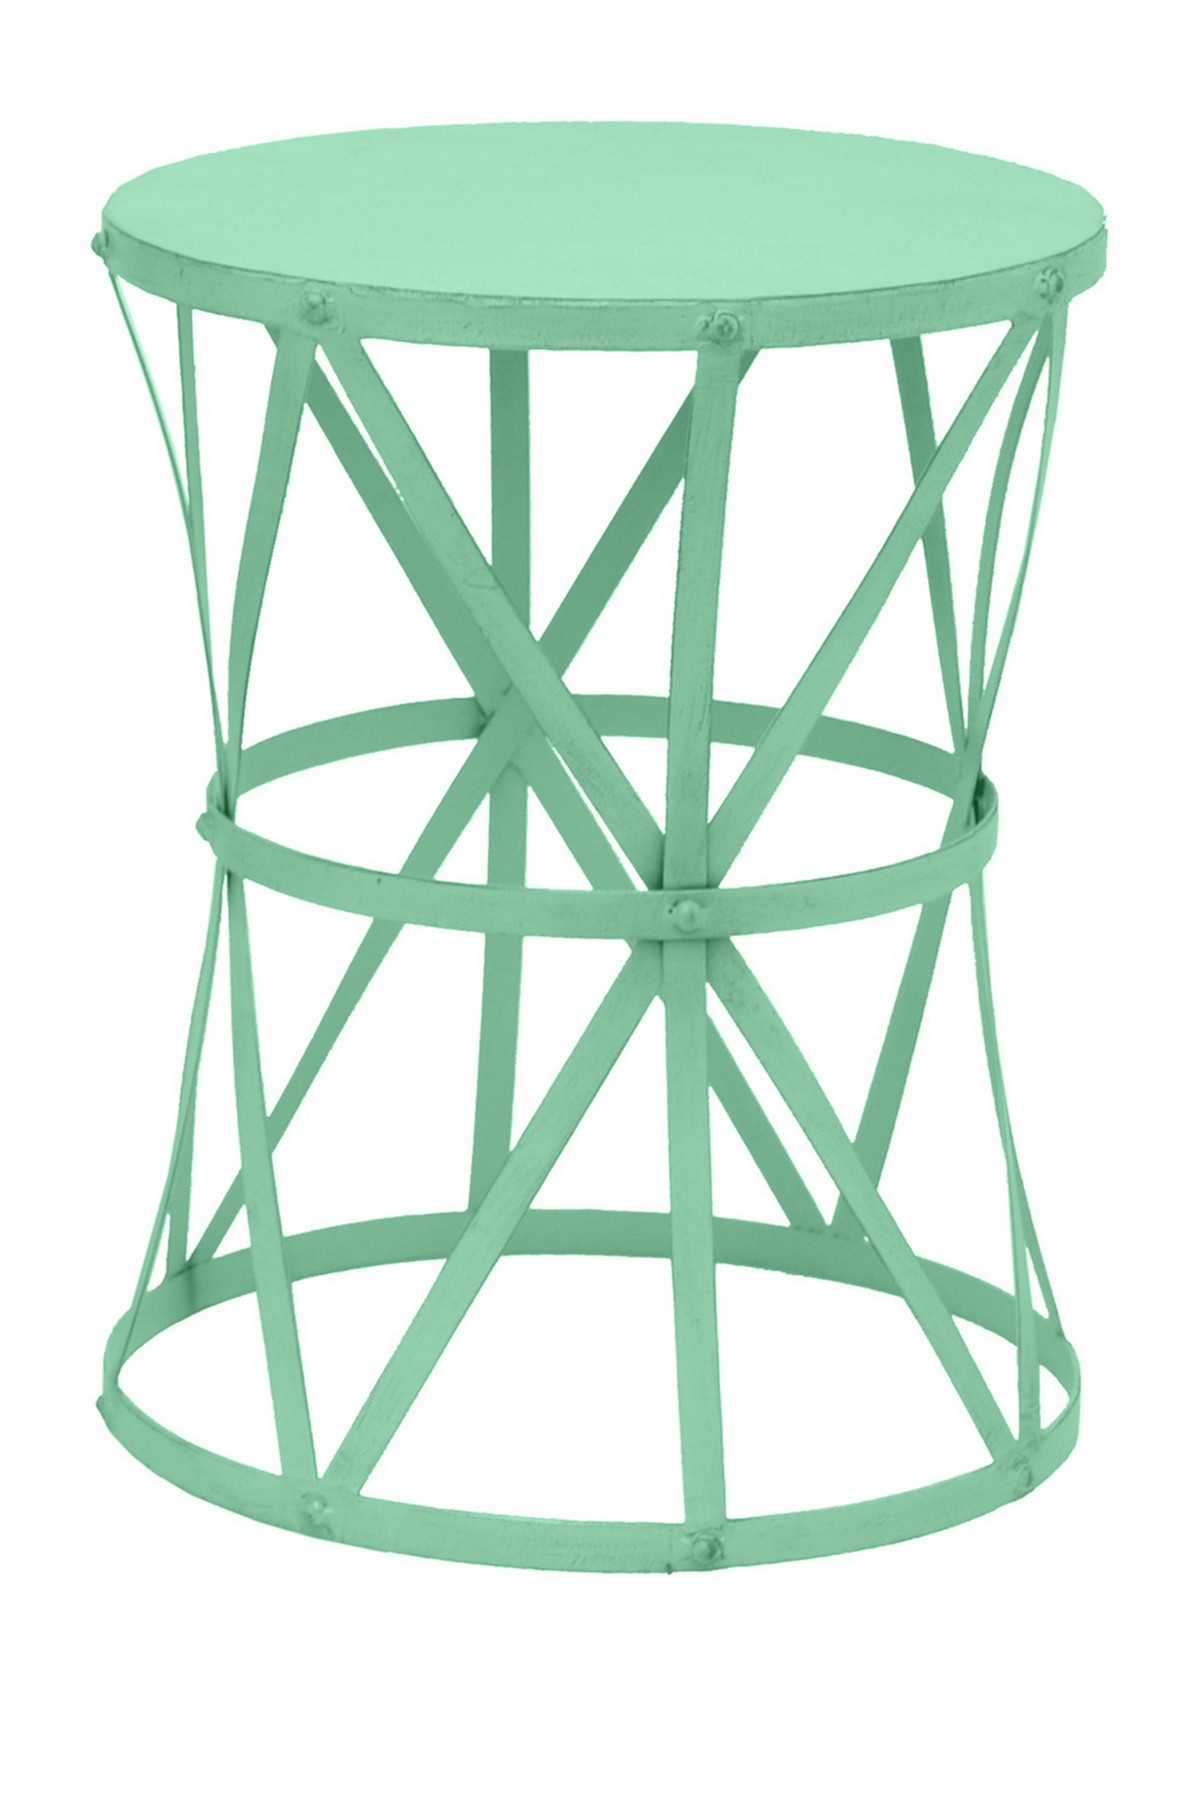 amazing metal accent table outdoor white target threshold top base glass iron side patio legs bronze drum corranade round tables wrought full size cordless floor lamps home ethan